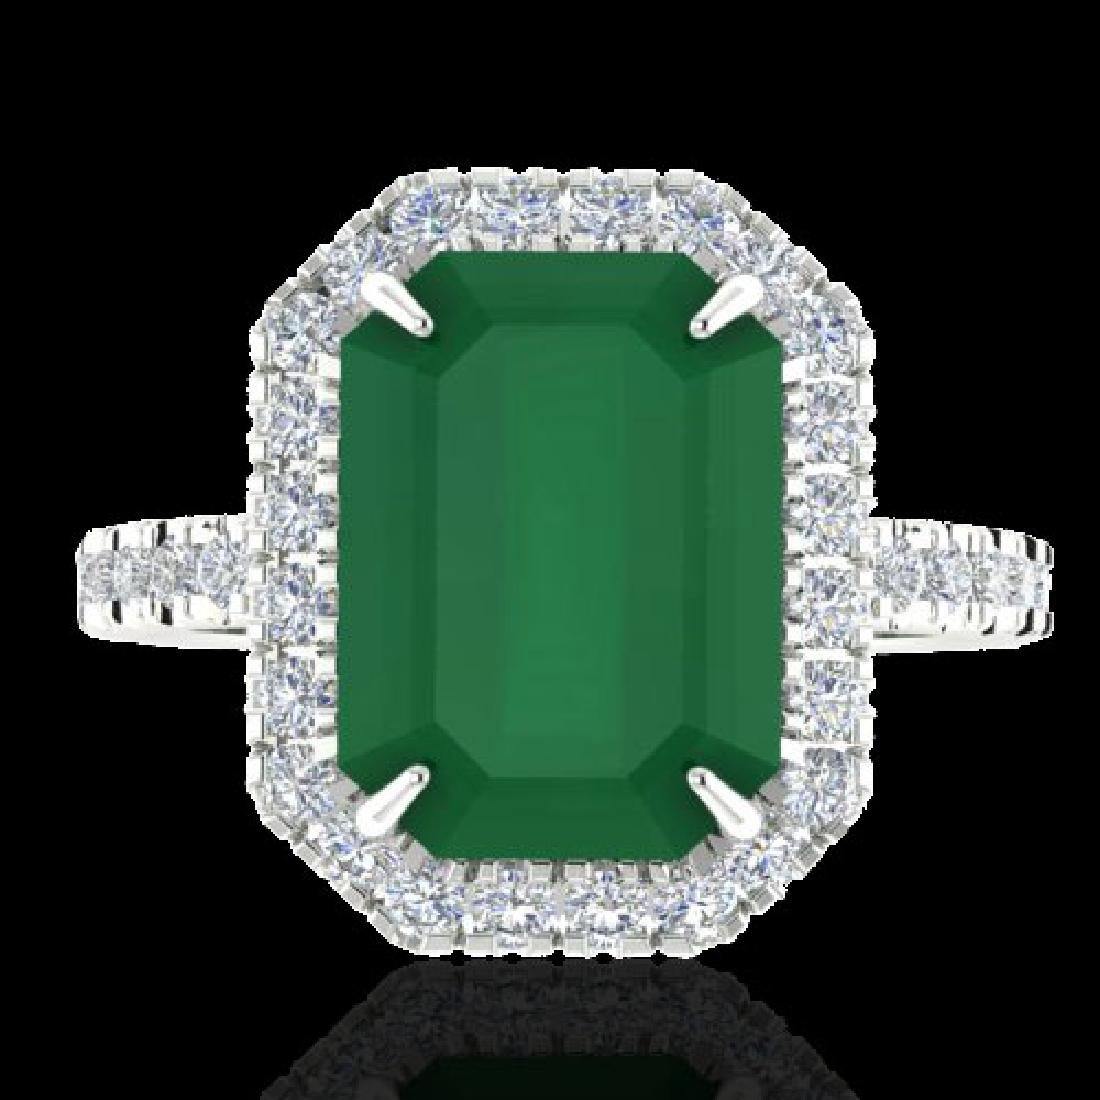 5.33 CTW Emerald And Micro Pave VS/SI Diamond Certified